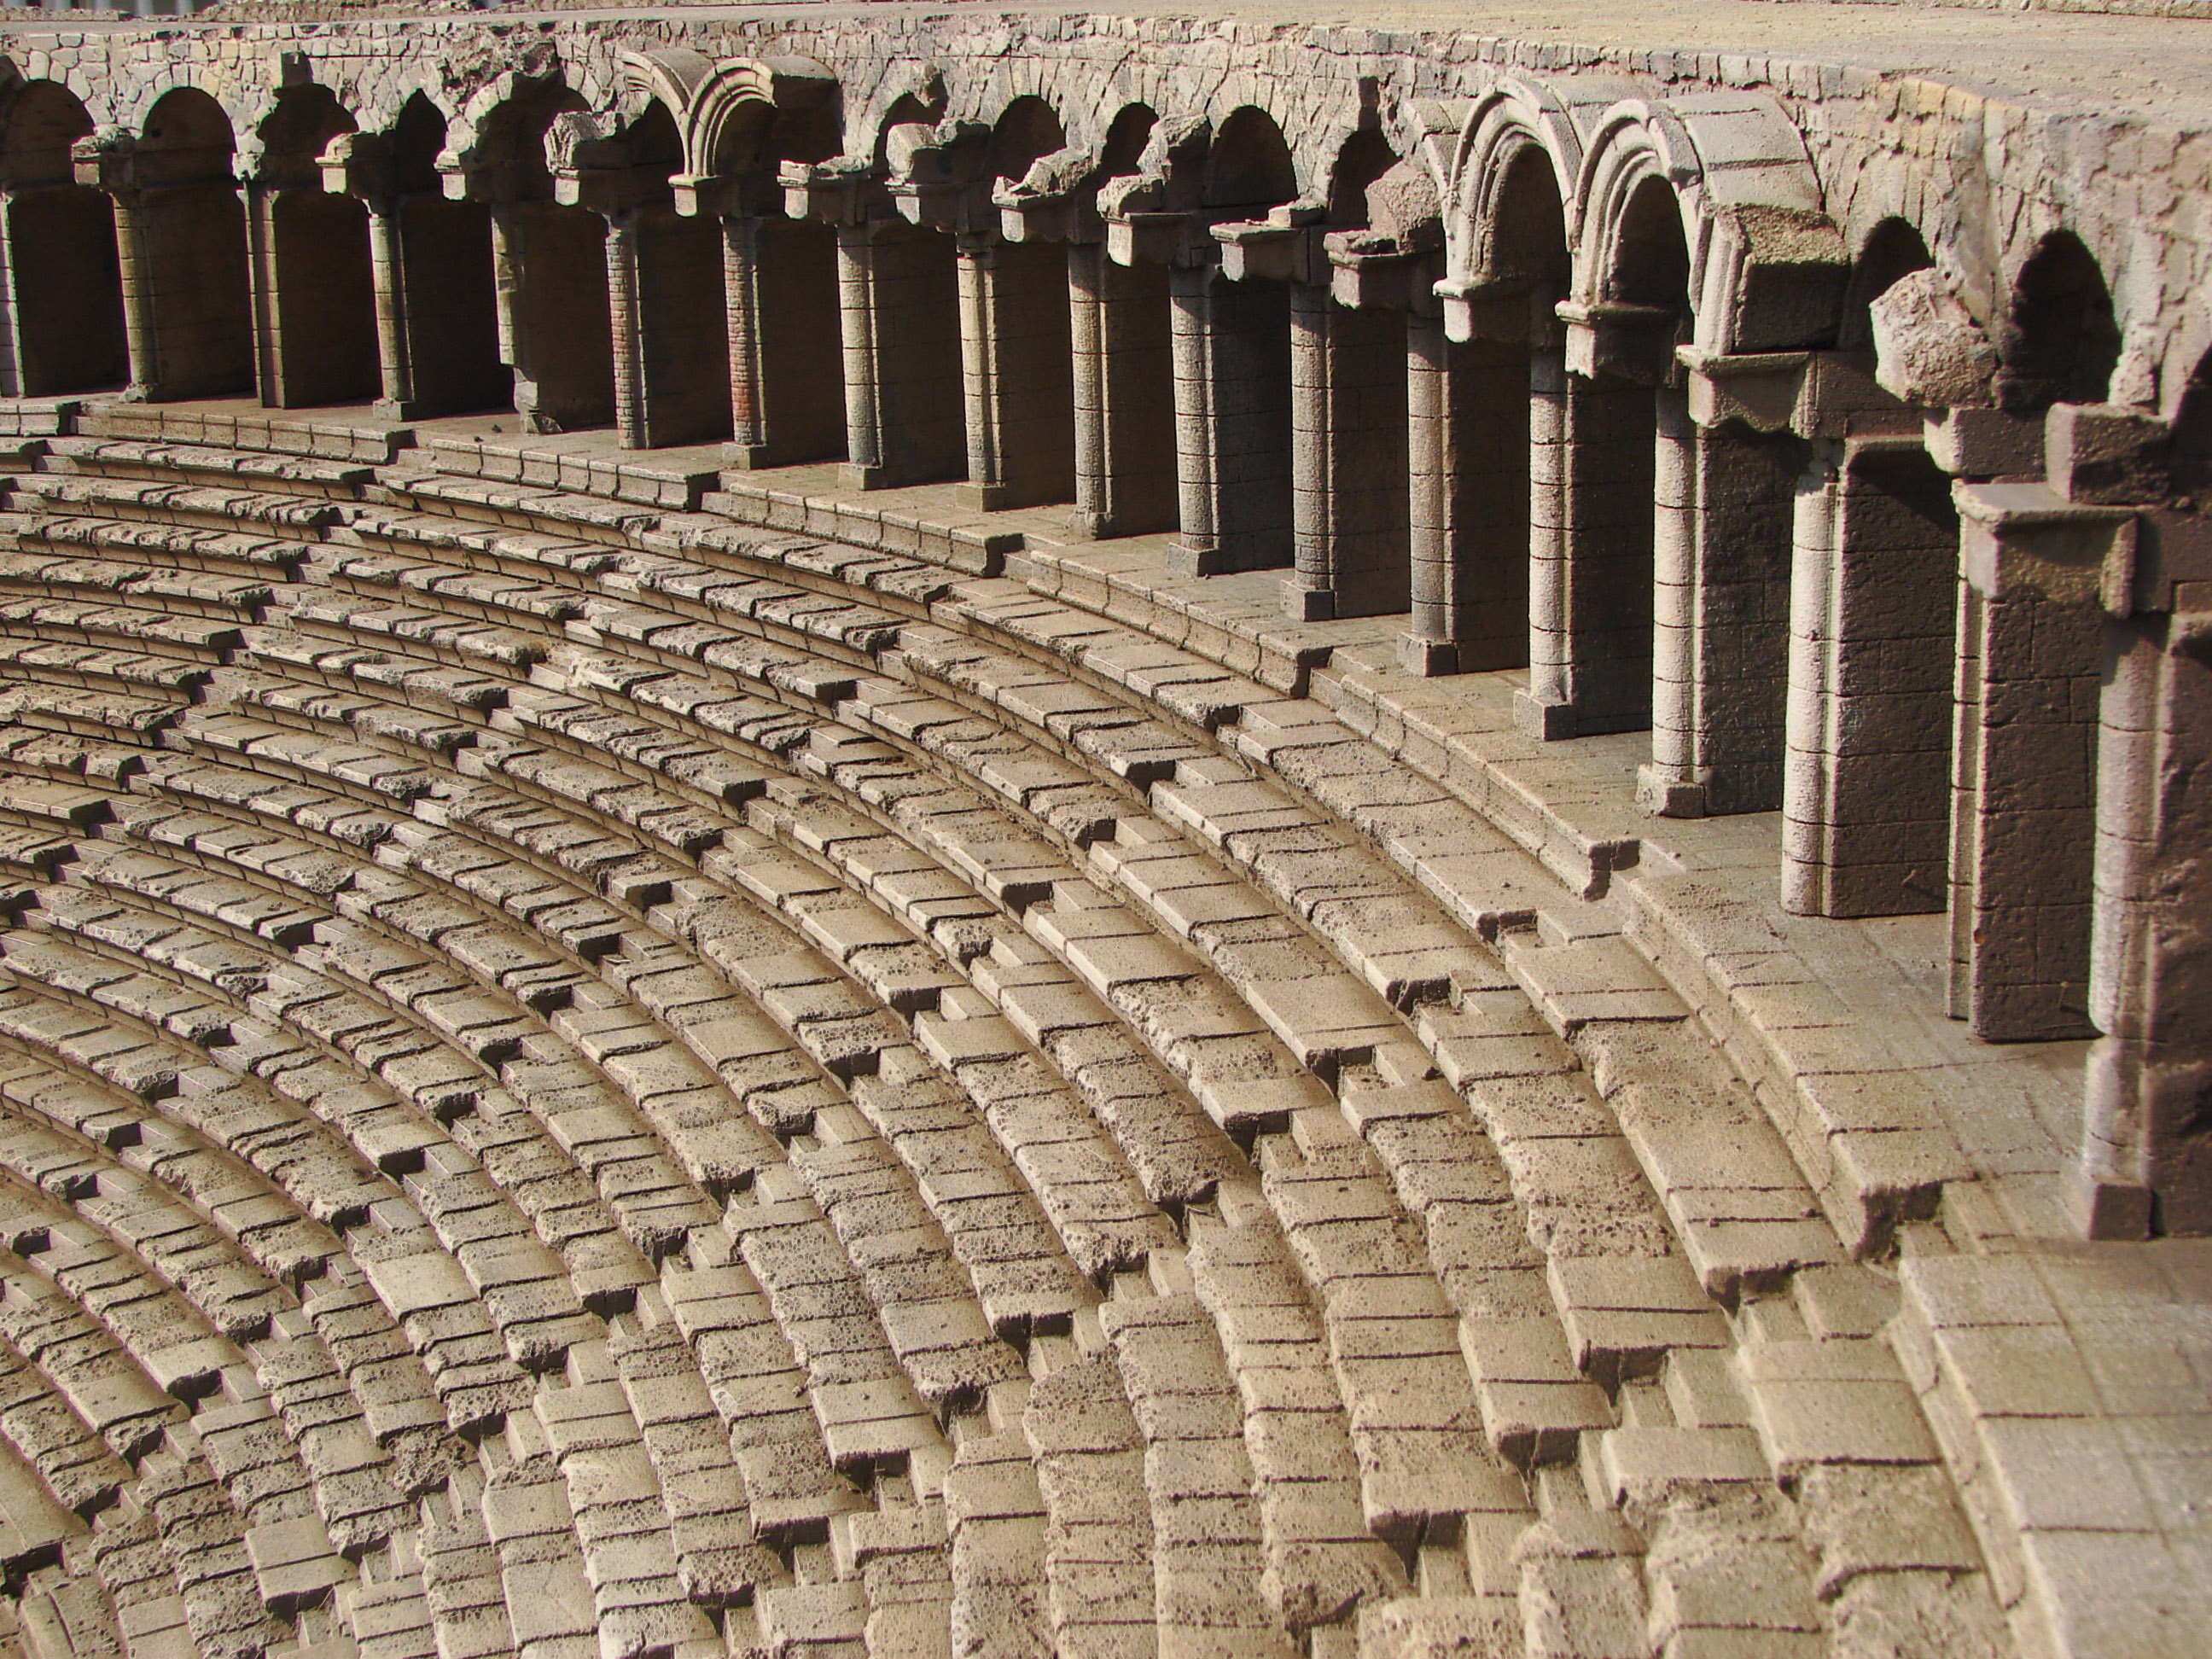 File:Aspendos-02619.jpg - Wikimedia Commons